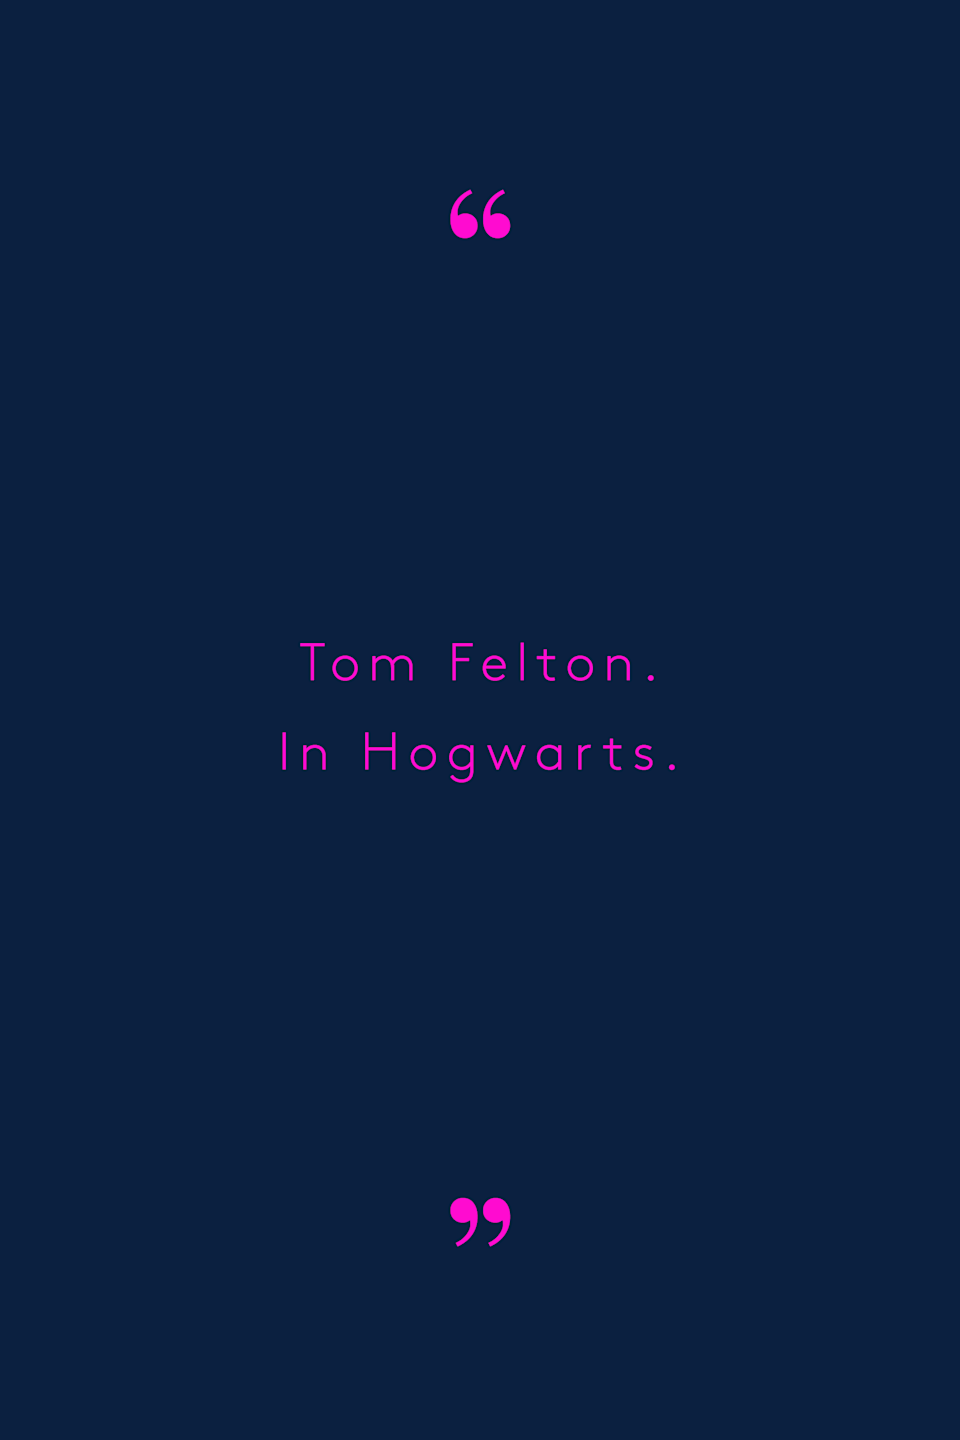 """<p>""""Tom Felton. In Hogwarts. I'm a Ravenclaw and he's a Slytherin. Forbidden romance. He's a selfish lover, but I don't even mind. The sex is <em>magical</em>."""" — Tara, 20.</p>"""